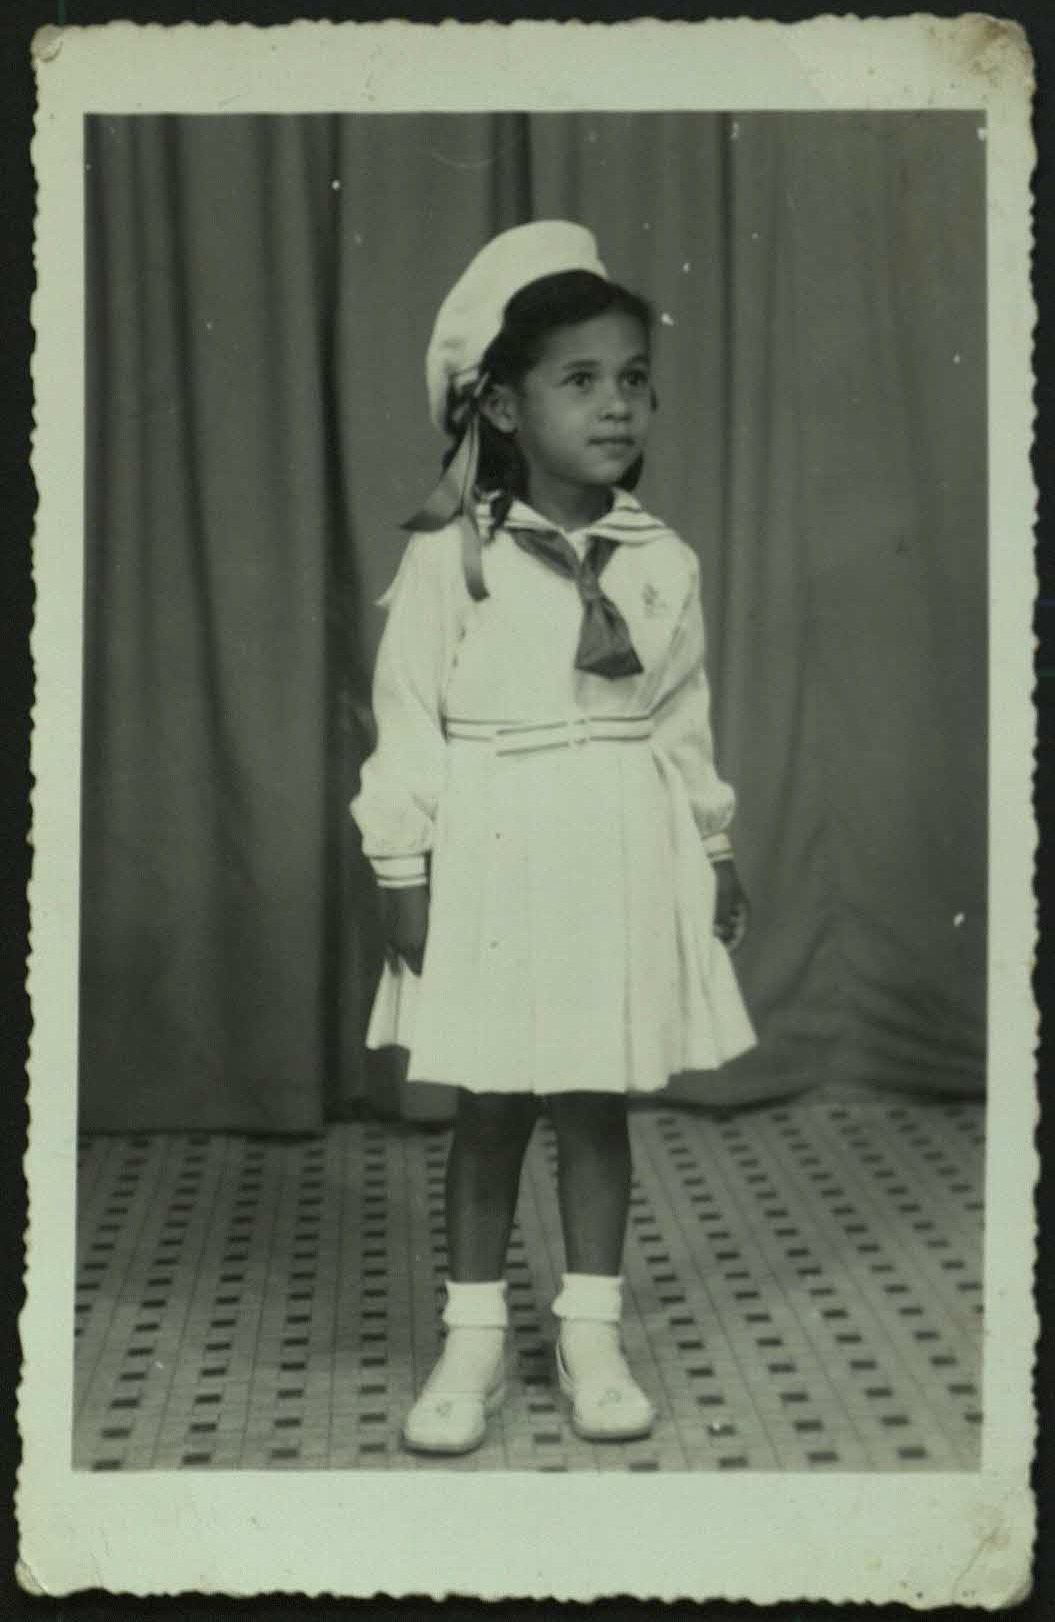 5-year old Rita in a religious school uniform.